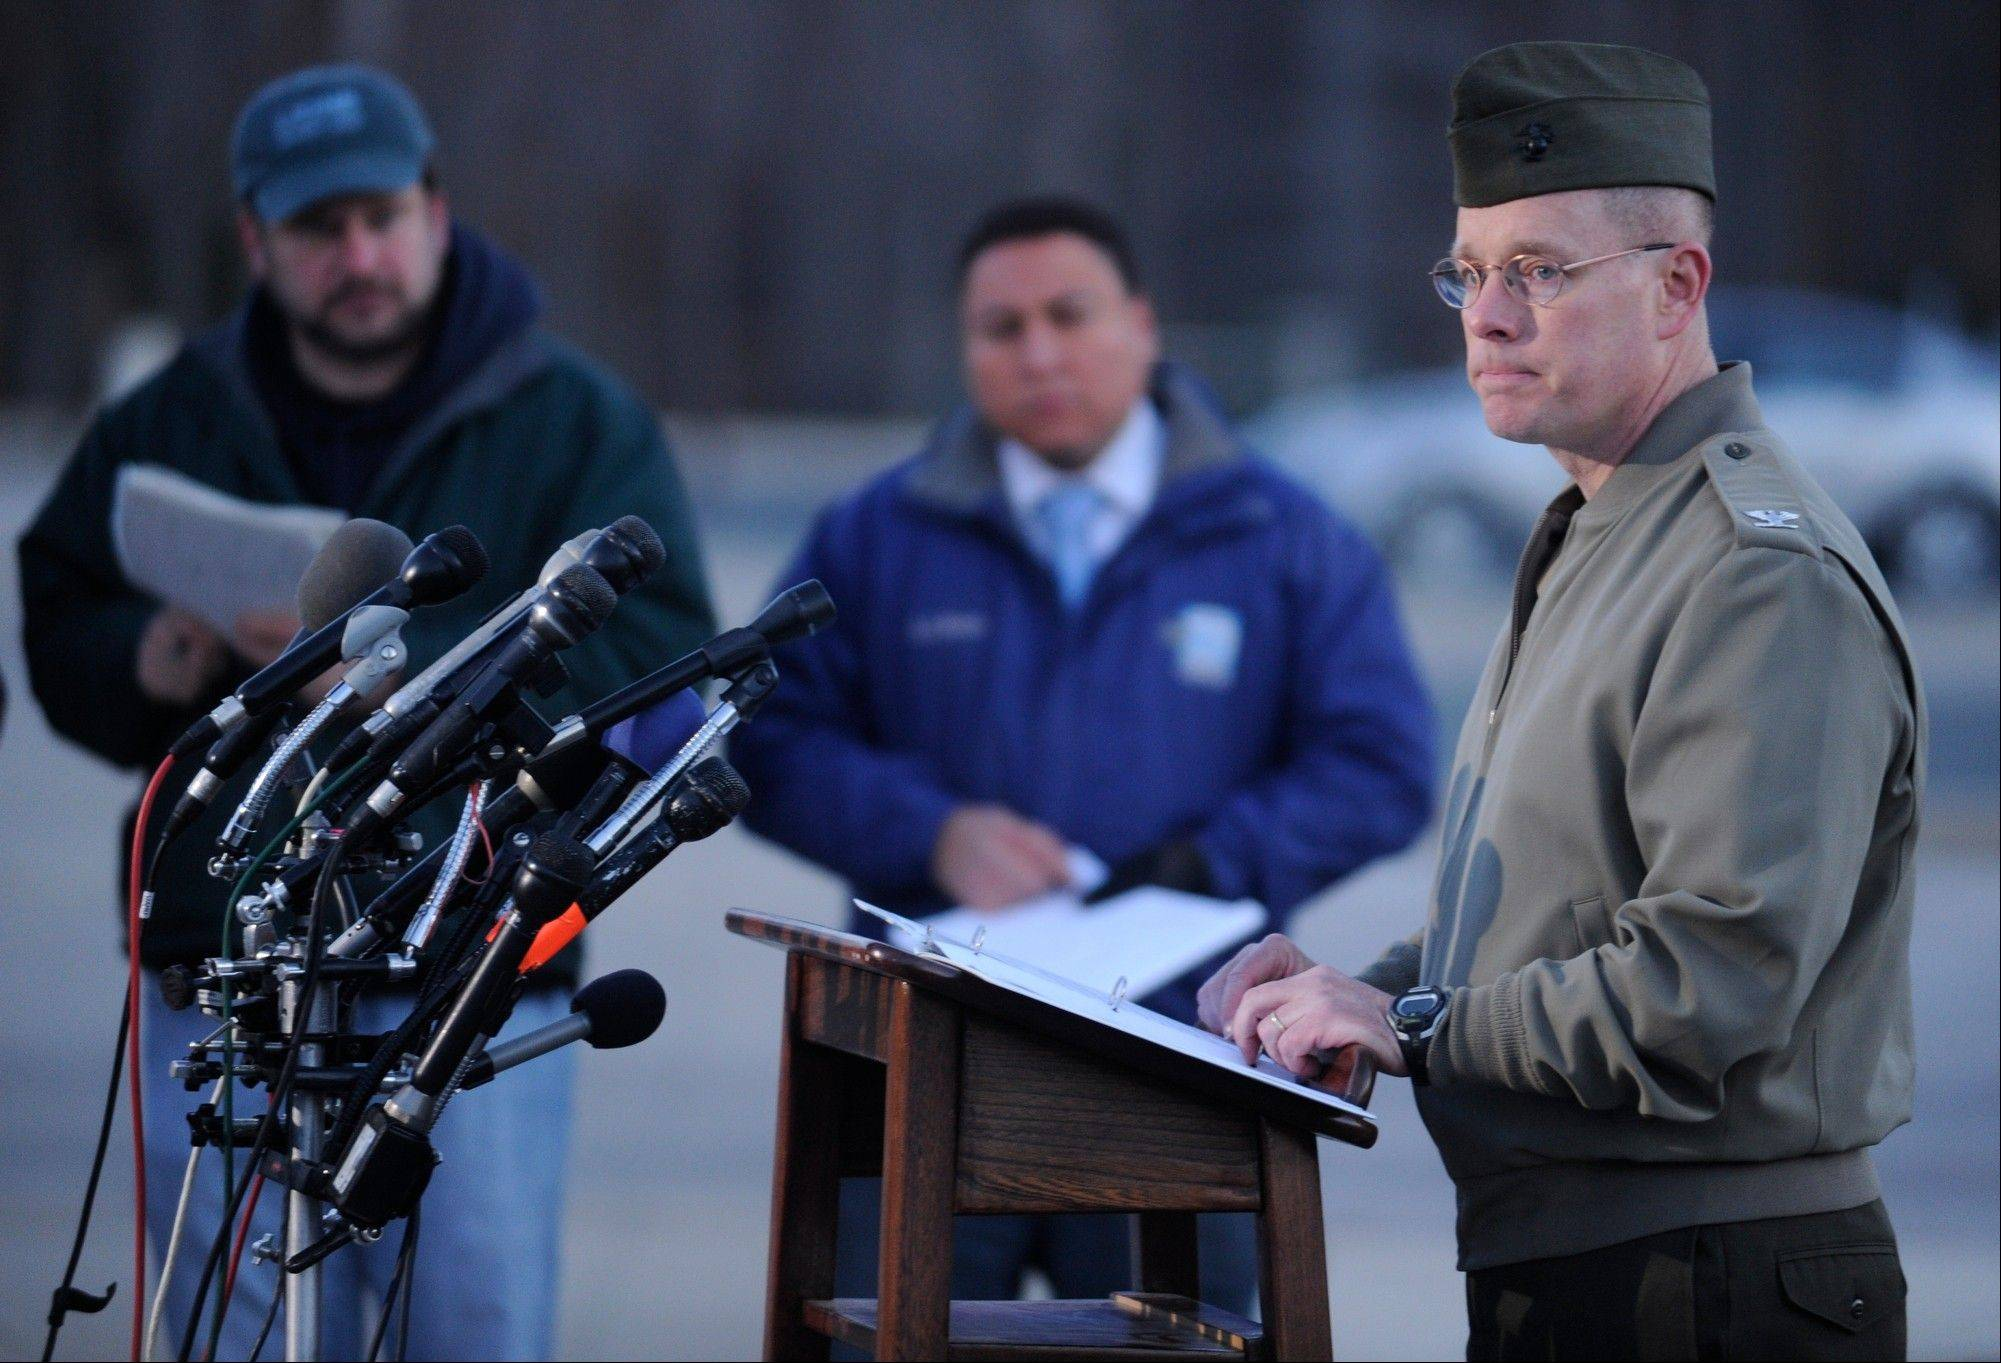 Col. David W. Maxwell holds a news conference at the Marine Corps Museum in Quantico, Va., on Friday, March 22, 2013 regarding a murder-suicide that occurred on Thursday night that resulted in the deaths of three Marines. A Marine killed a male and female colleague in a shooting at a base in northern Virginia before killing himself, officials said early Friday.